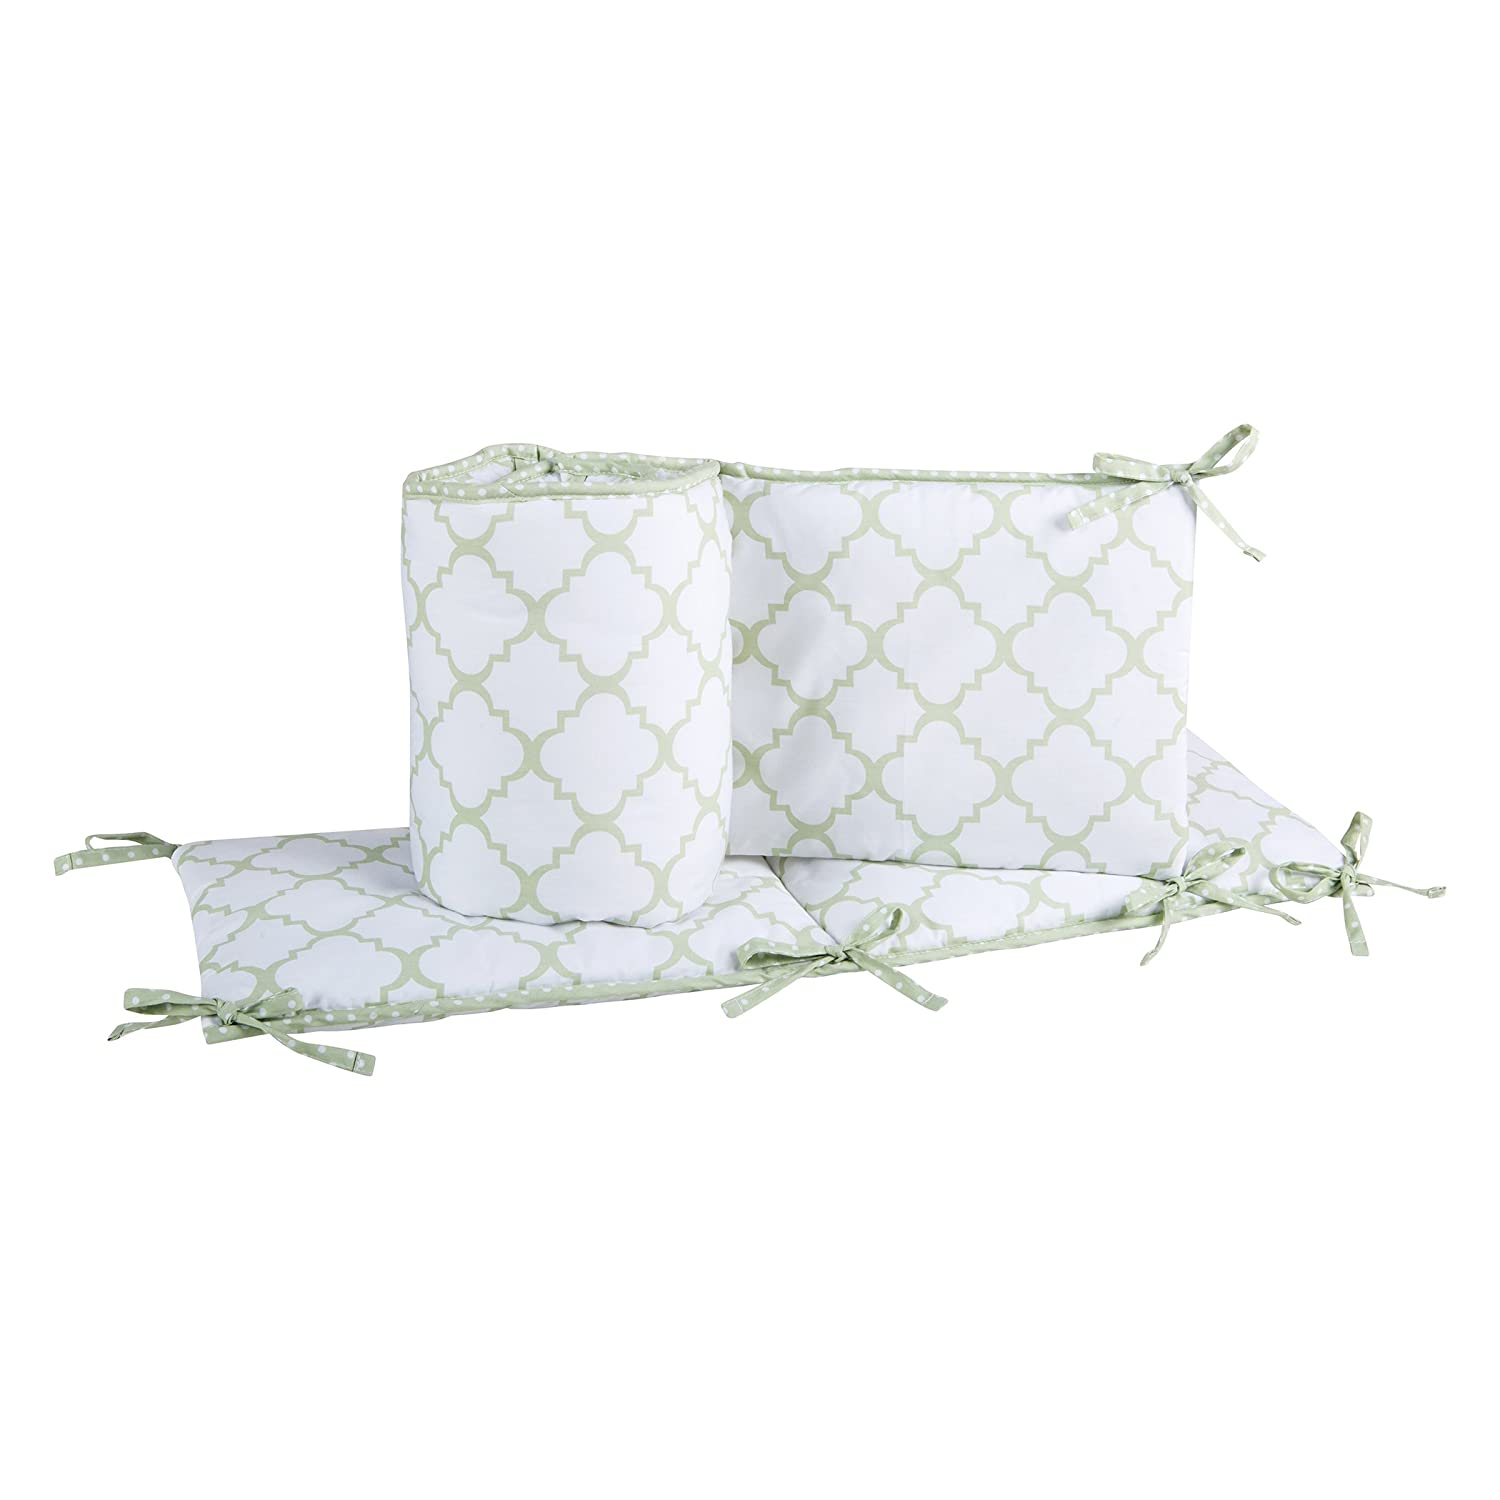 Trend Lab Sea Foam Crib Bumpers, Sage 101677